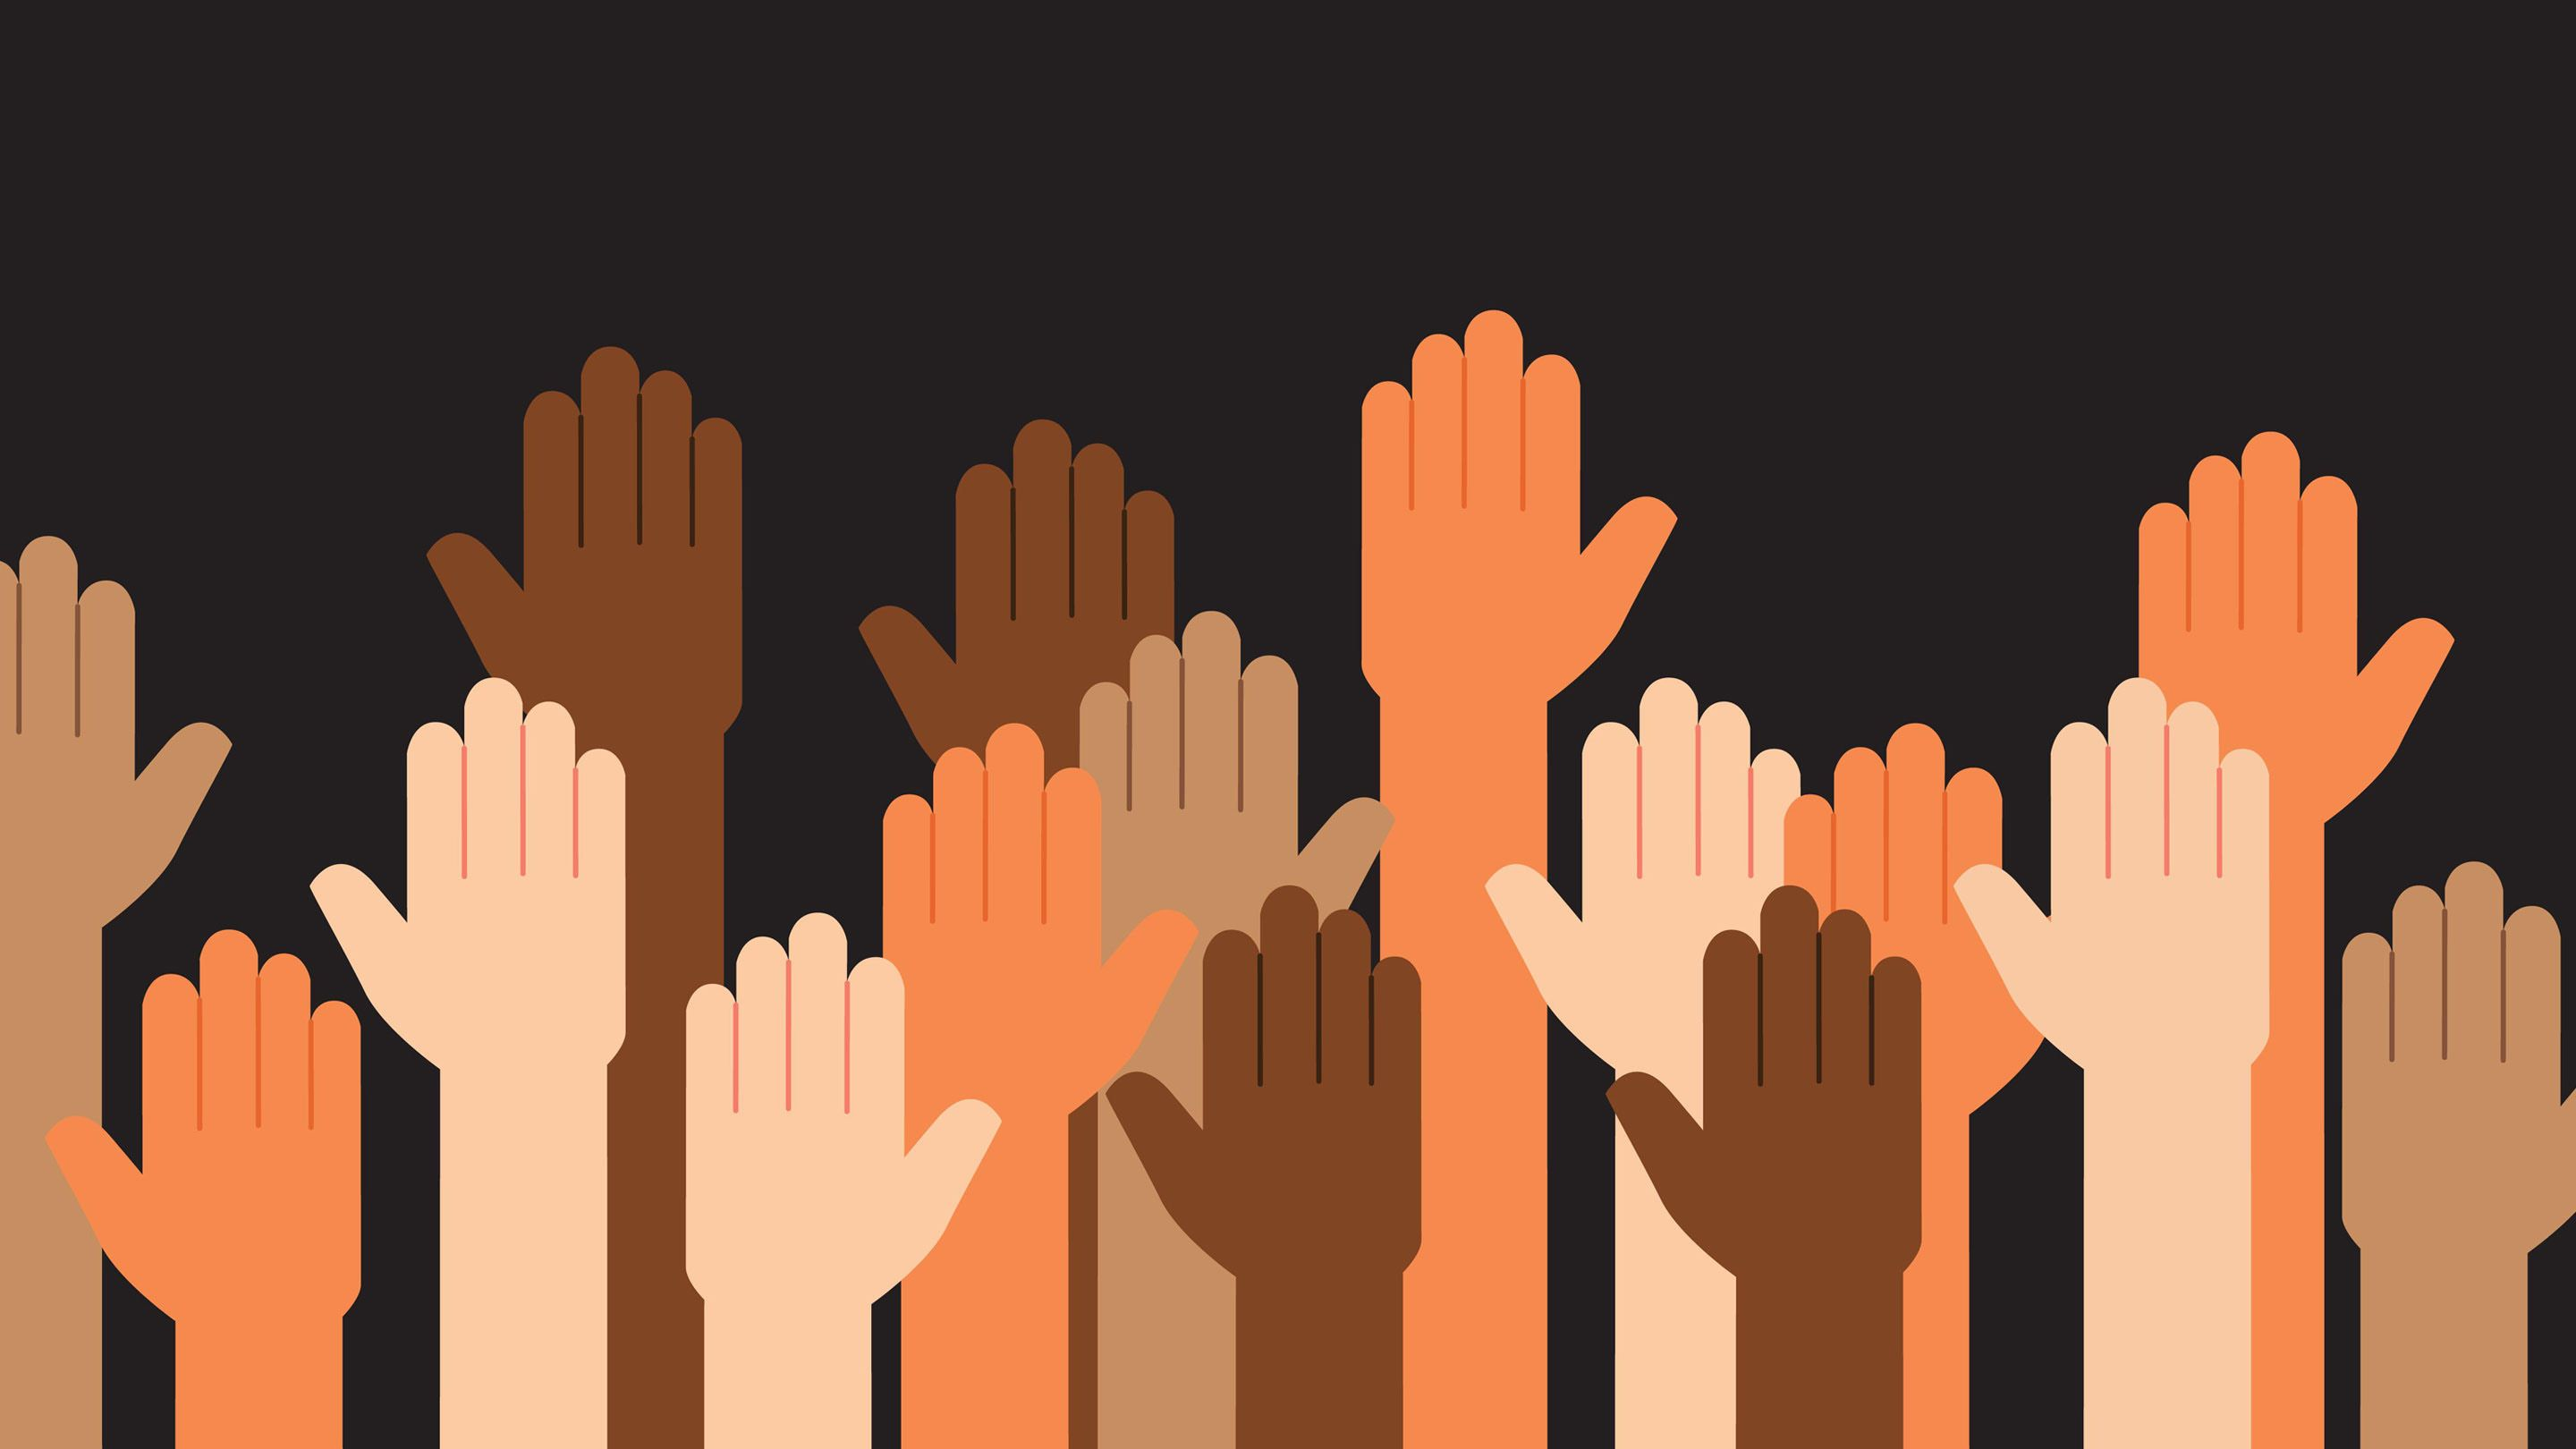 Hands of all colors raised in unison